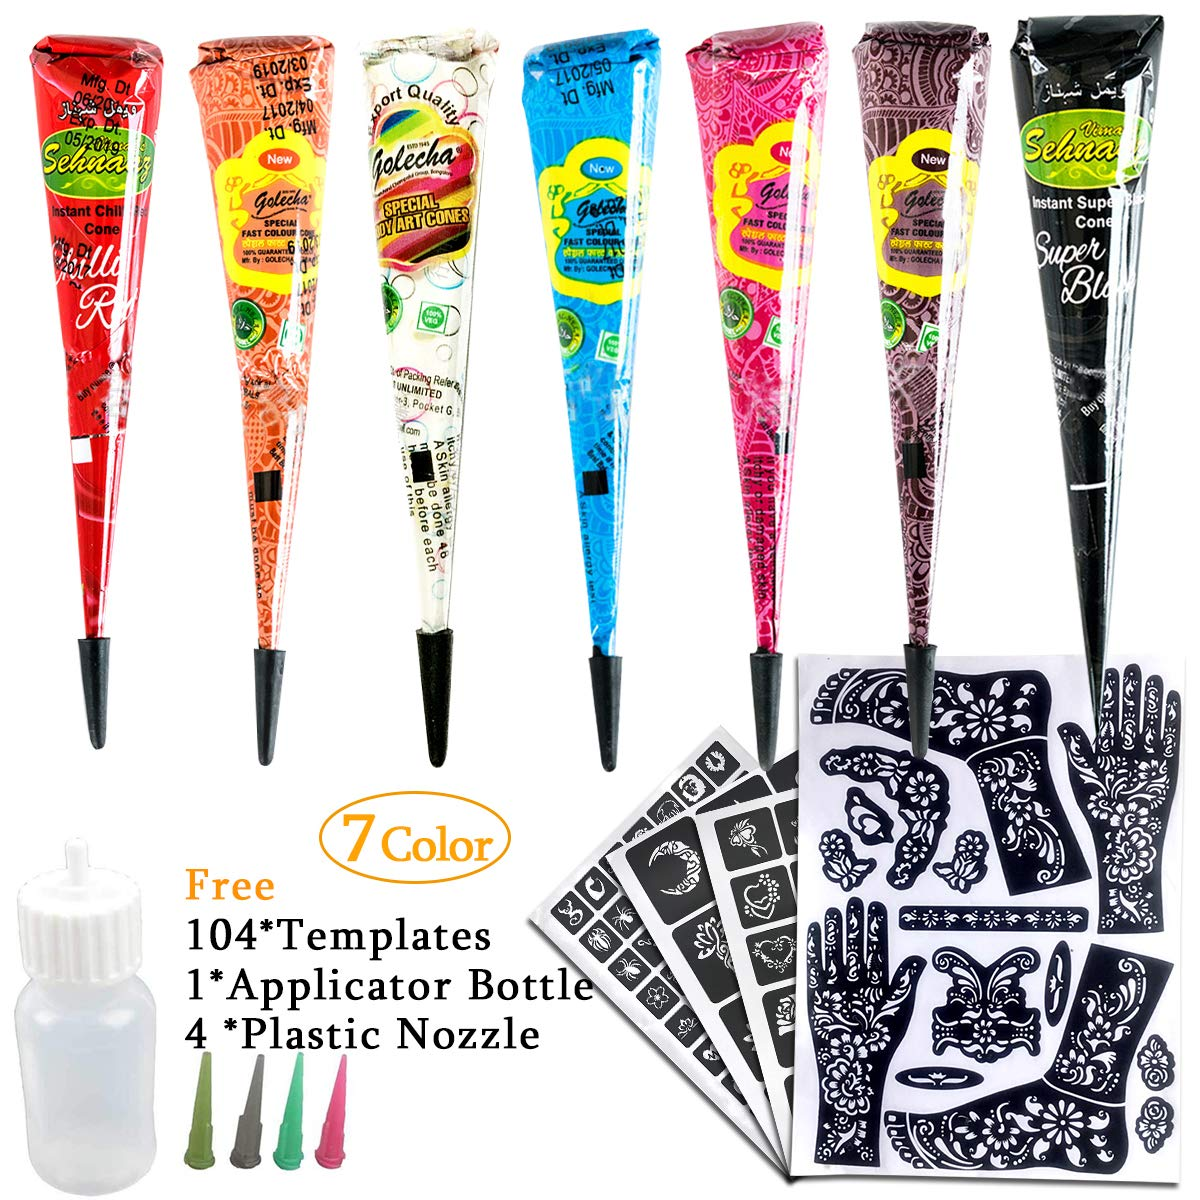 7Color Temporary Tattoo India Henna Kit Tattoo Paste Cone Body Art Painting Drawing with Free 104 pcs Tattoo Templates, 1 x Applicator Bottle and 4 x Plastic Nozzle by YLIANG